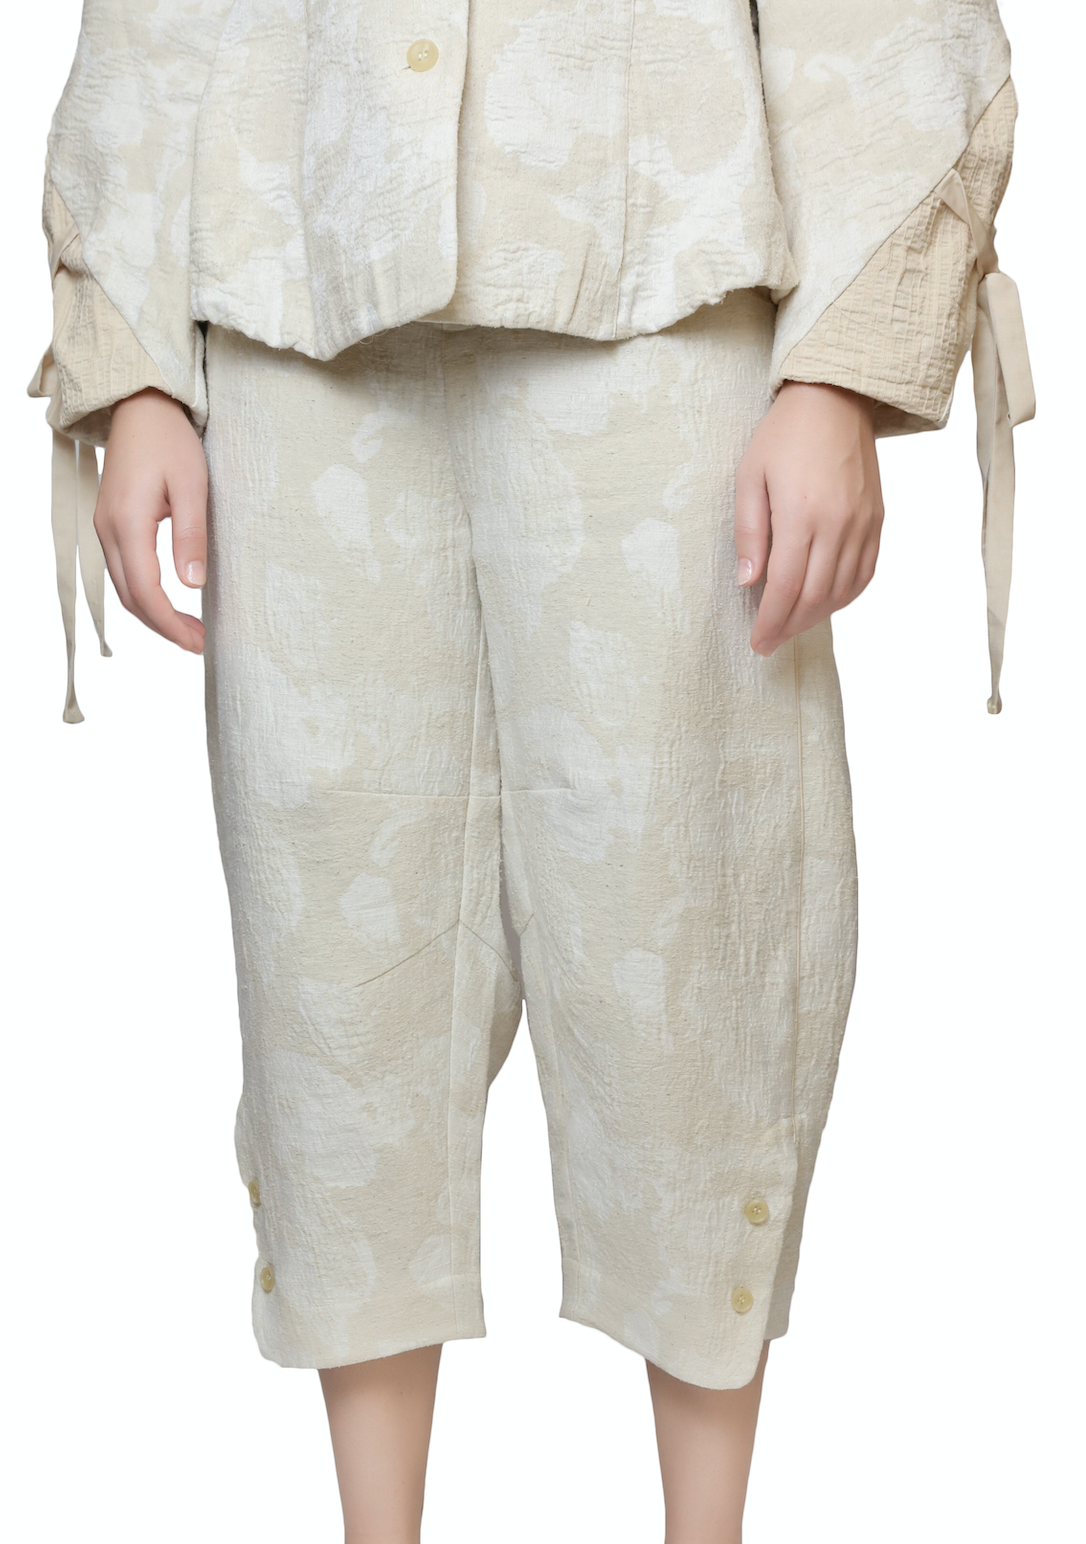 Cream Trousers Bottoms RENLI SU - NOLM - Clothes Online - nolmau.com - Sydney-Australia Online Shopping